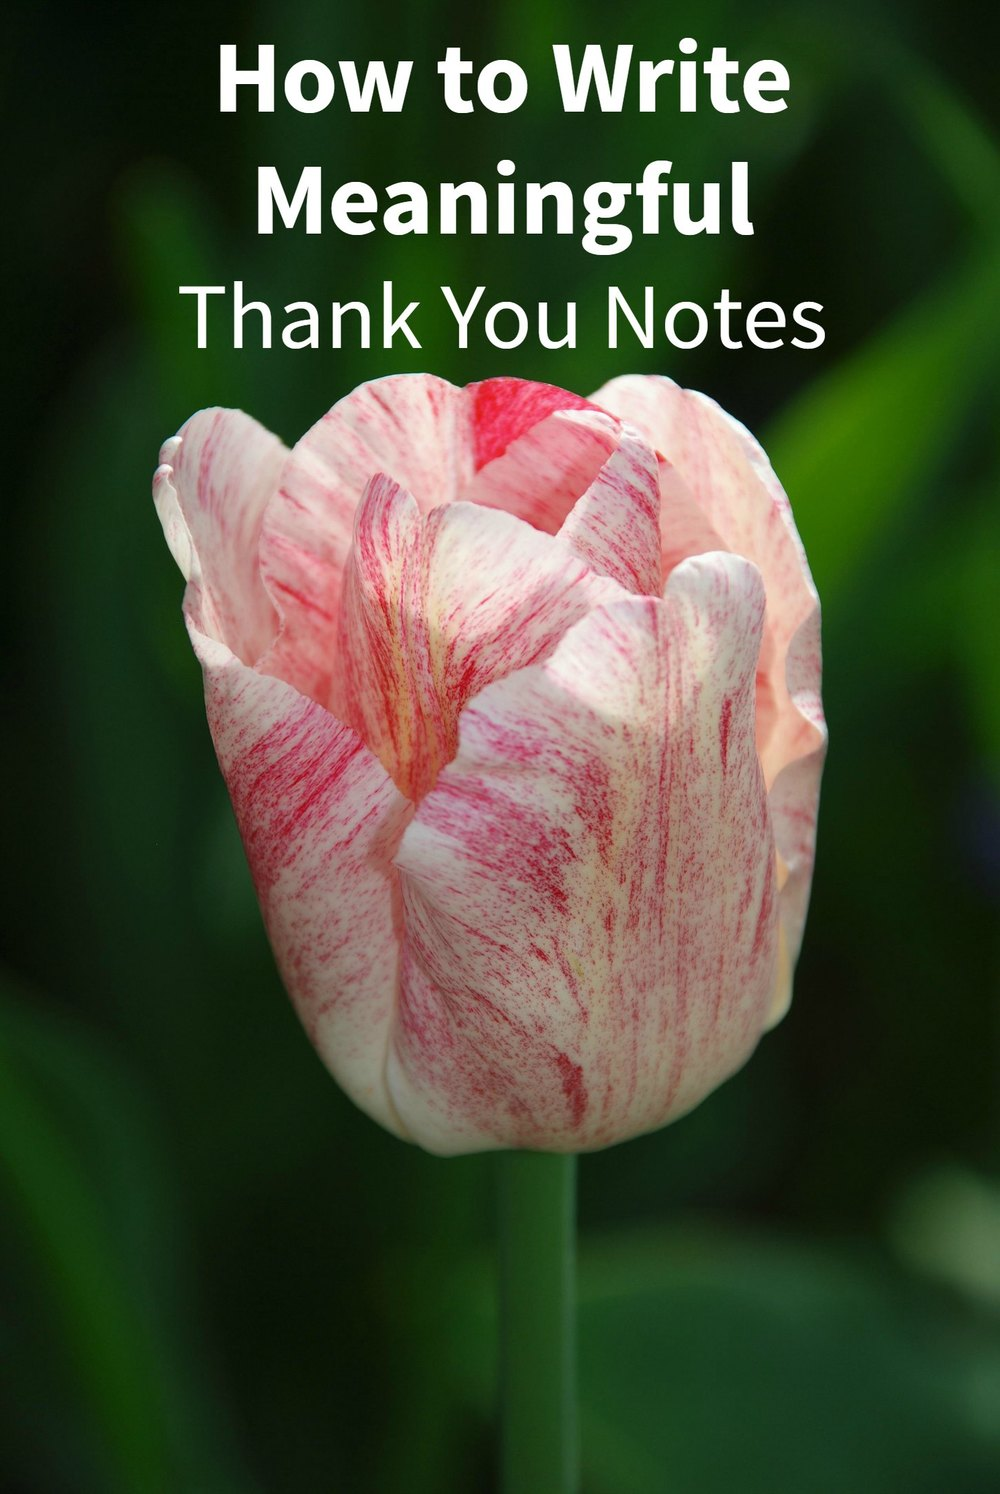 How to Write Meaningful Thank You Notes - Paper Swallow Events